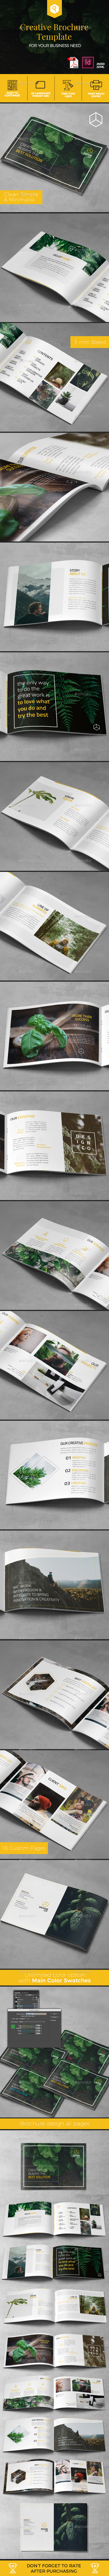 A5 Creative Brochure Template Vol. 01 - Corporate Brochures